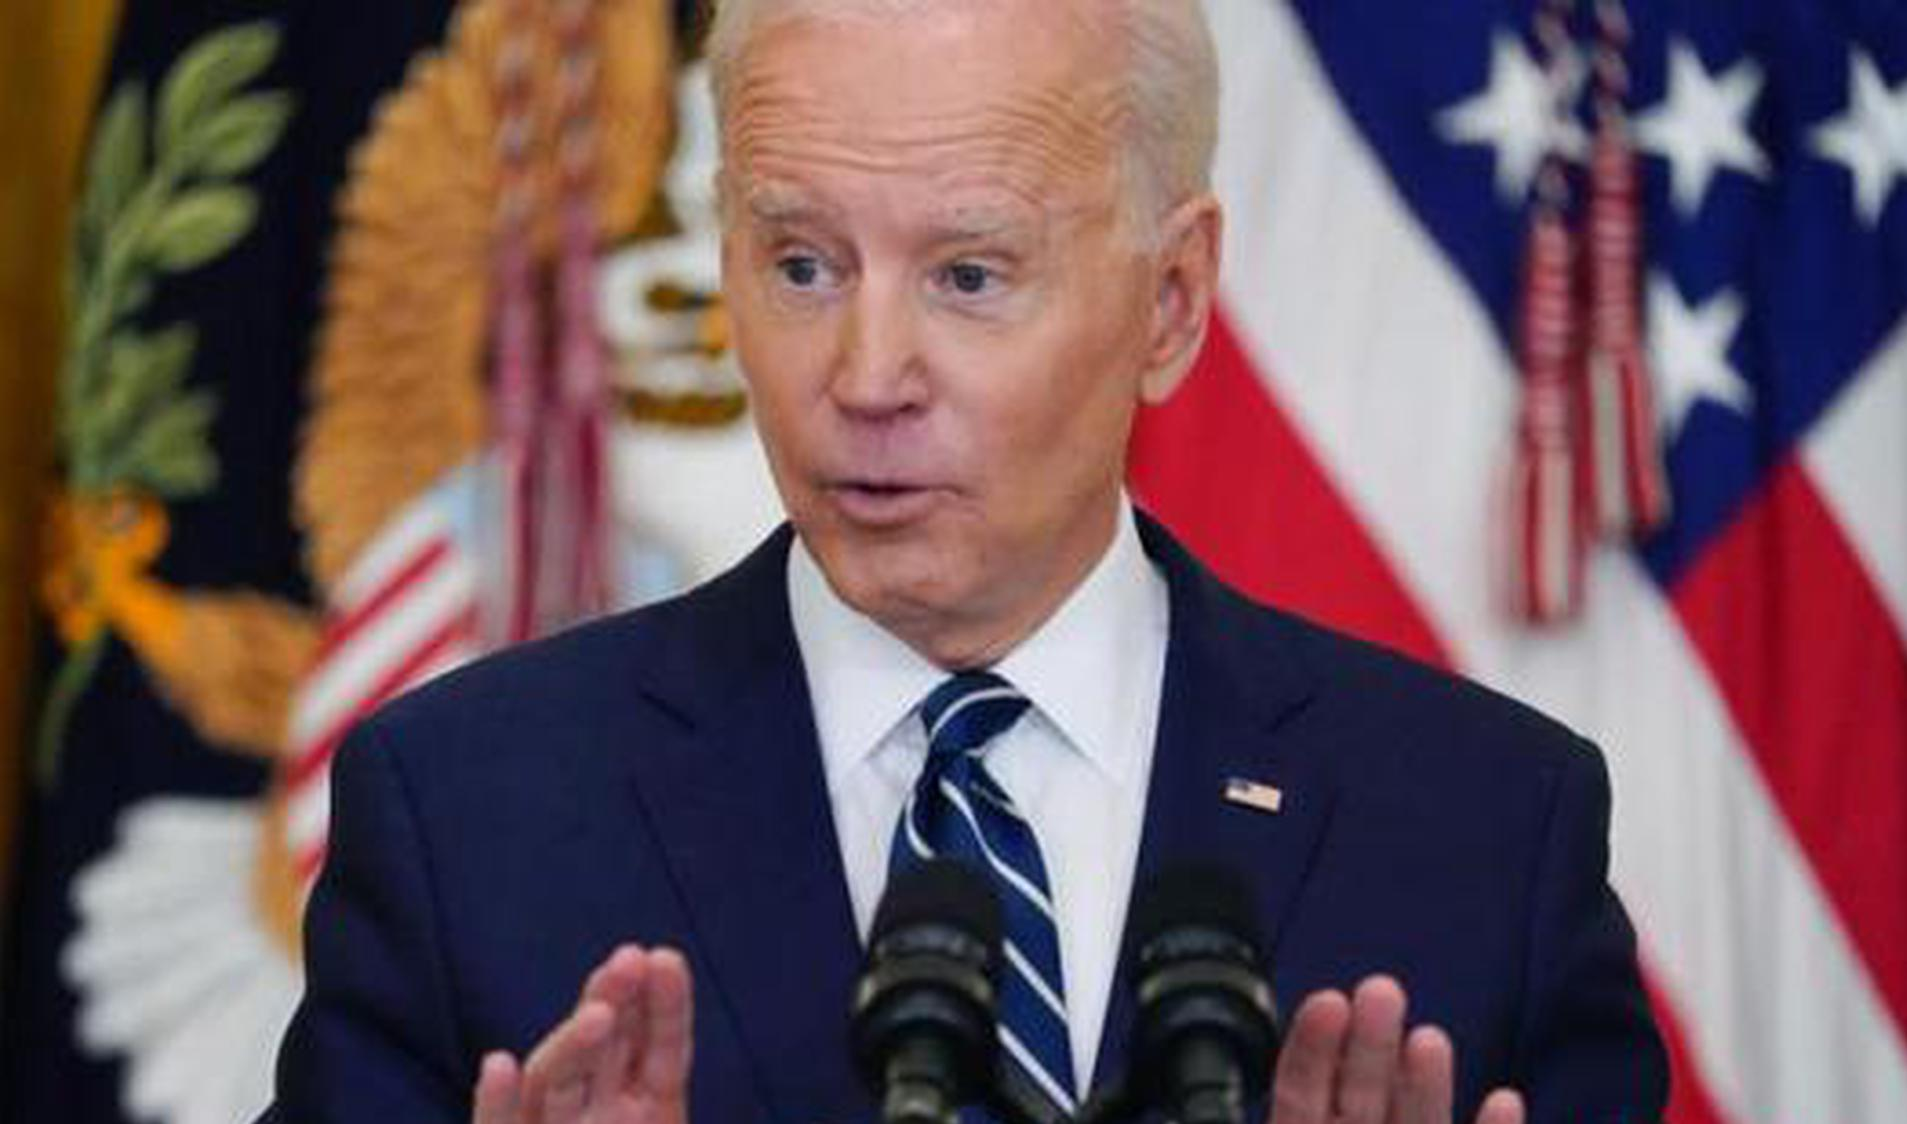 U.S. faces evacuation challenges as poll shows disapproval of Biden's handling of Afghanistan